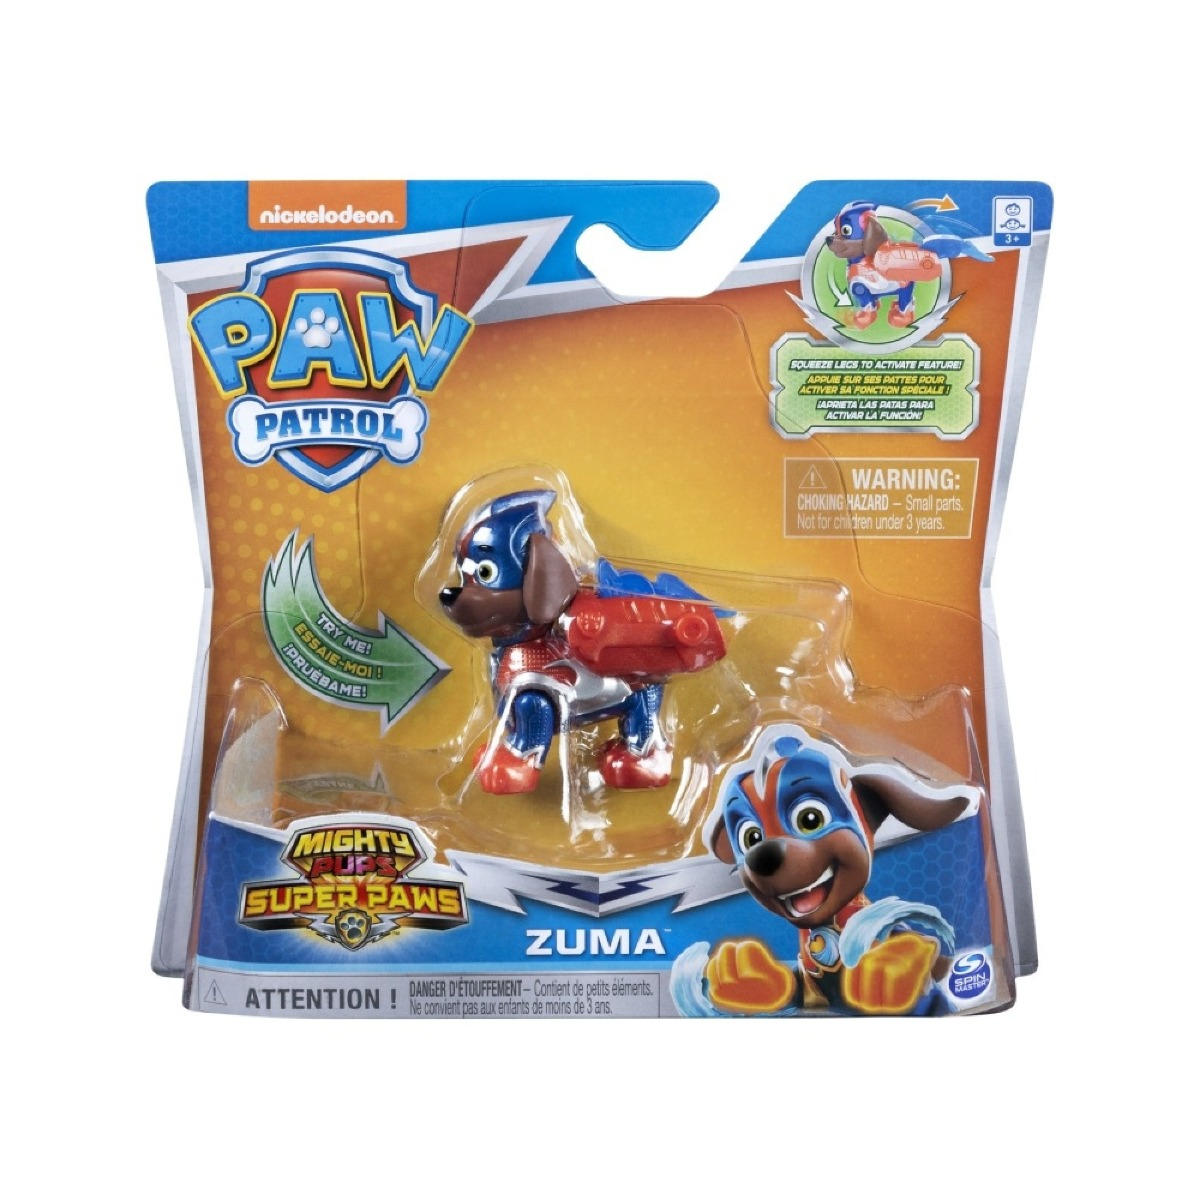 Figurina Paw Patrol Mighty Pups Super Paws, Zuma 20114290